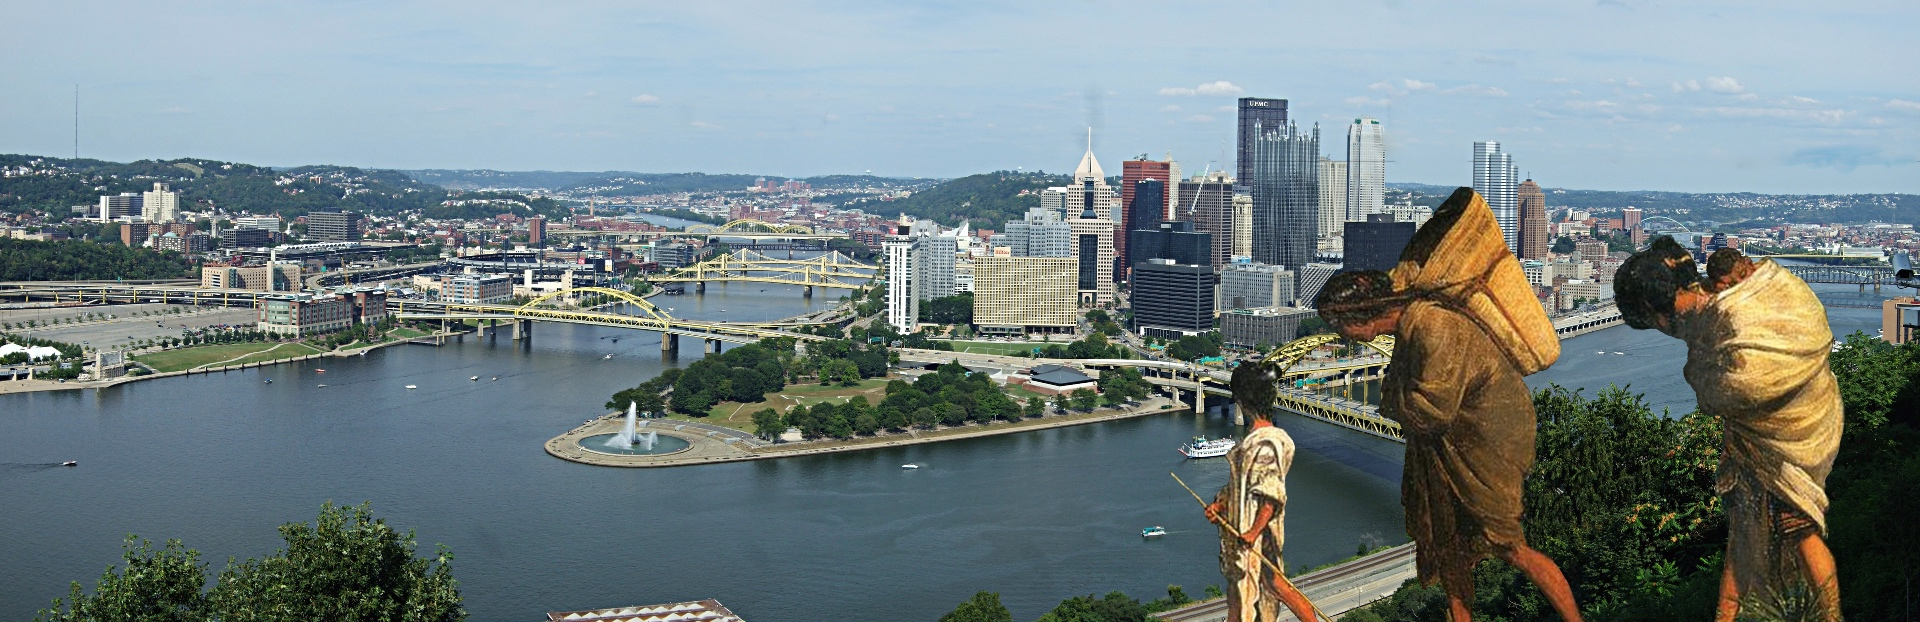 Pittsburgh skyline7